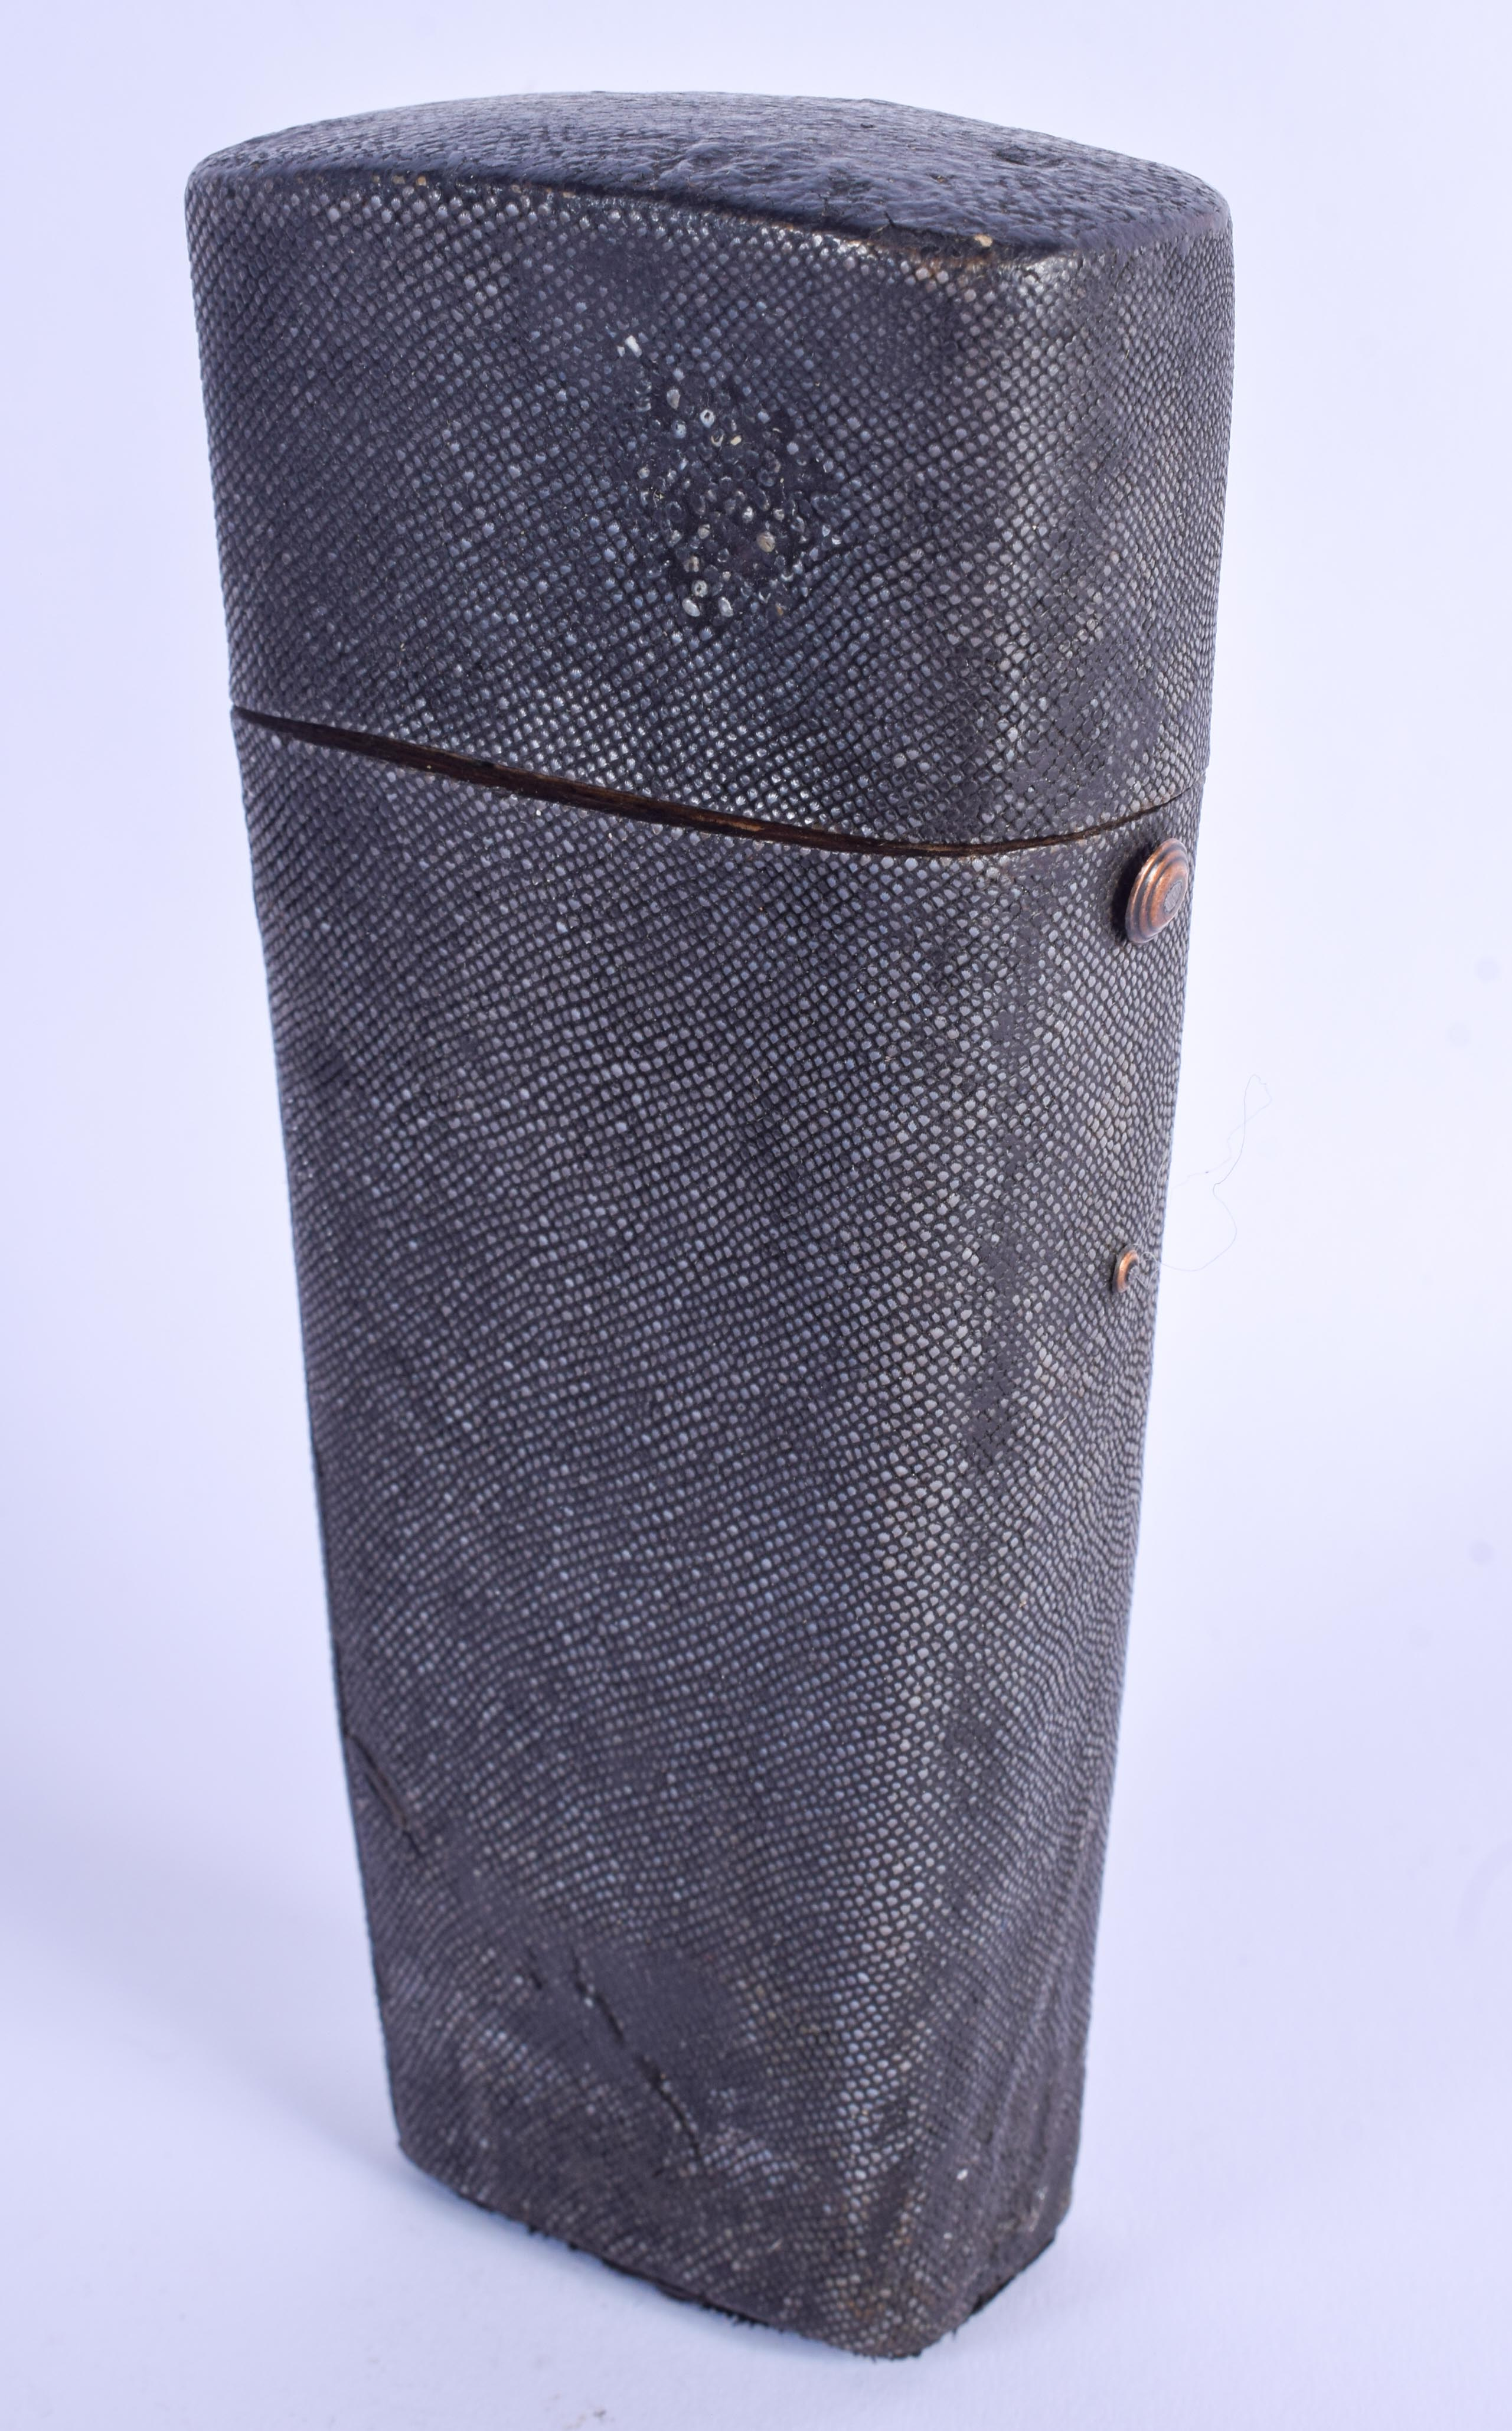 AN EARLY 19TH CENTURY ARCHITECTS SHAGREEN CASED ETUI. 16 cm x 7 cm.